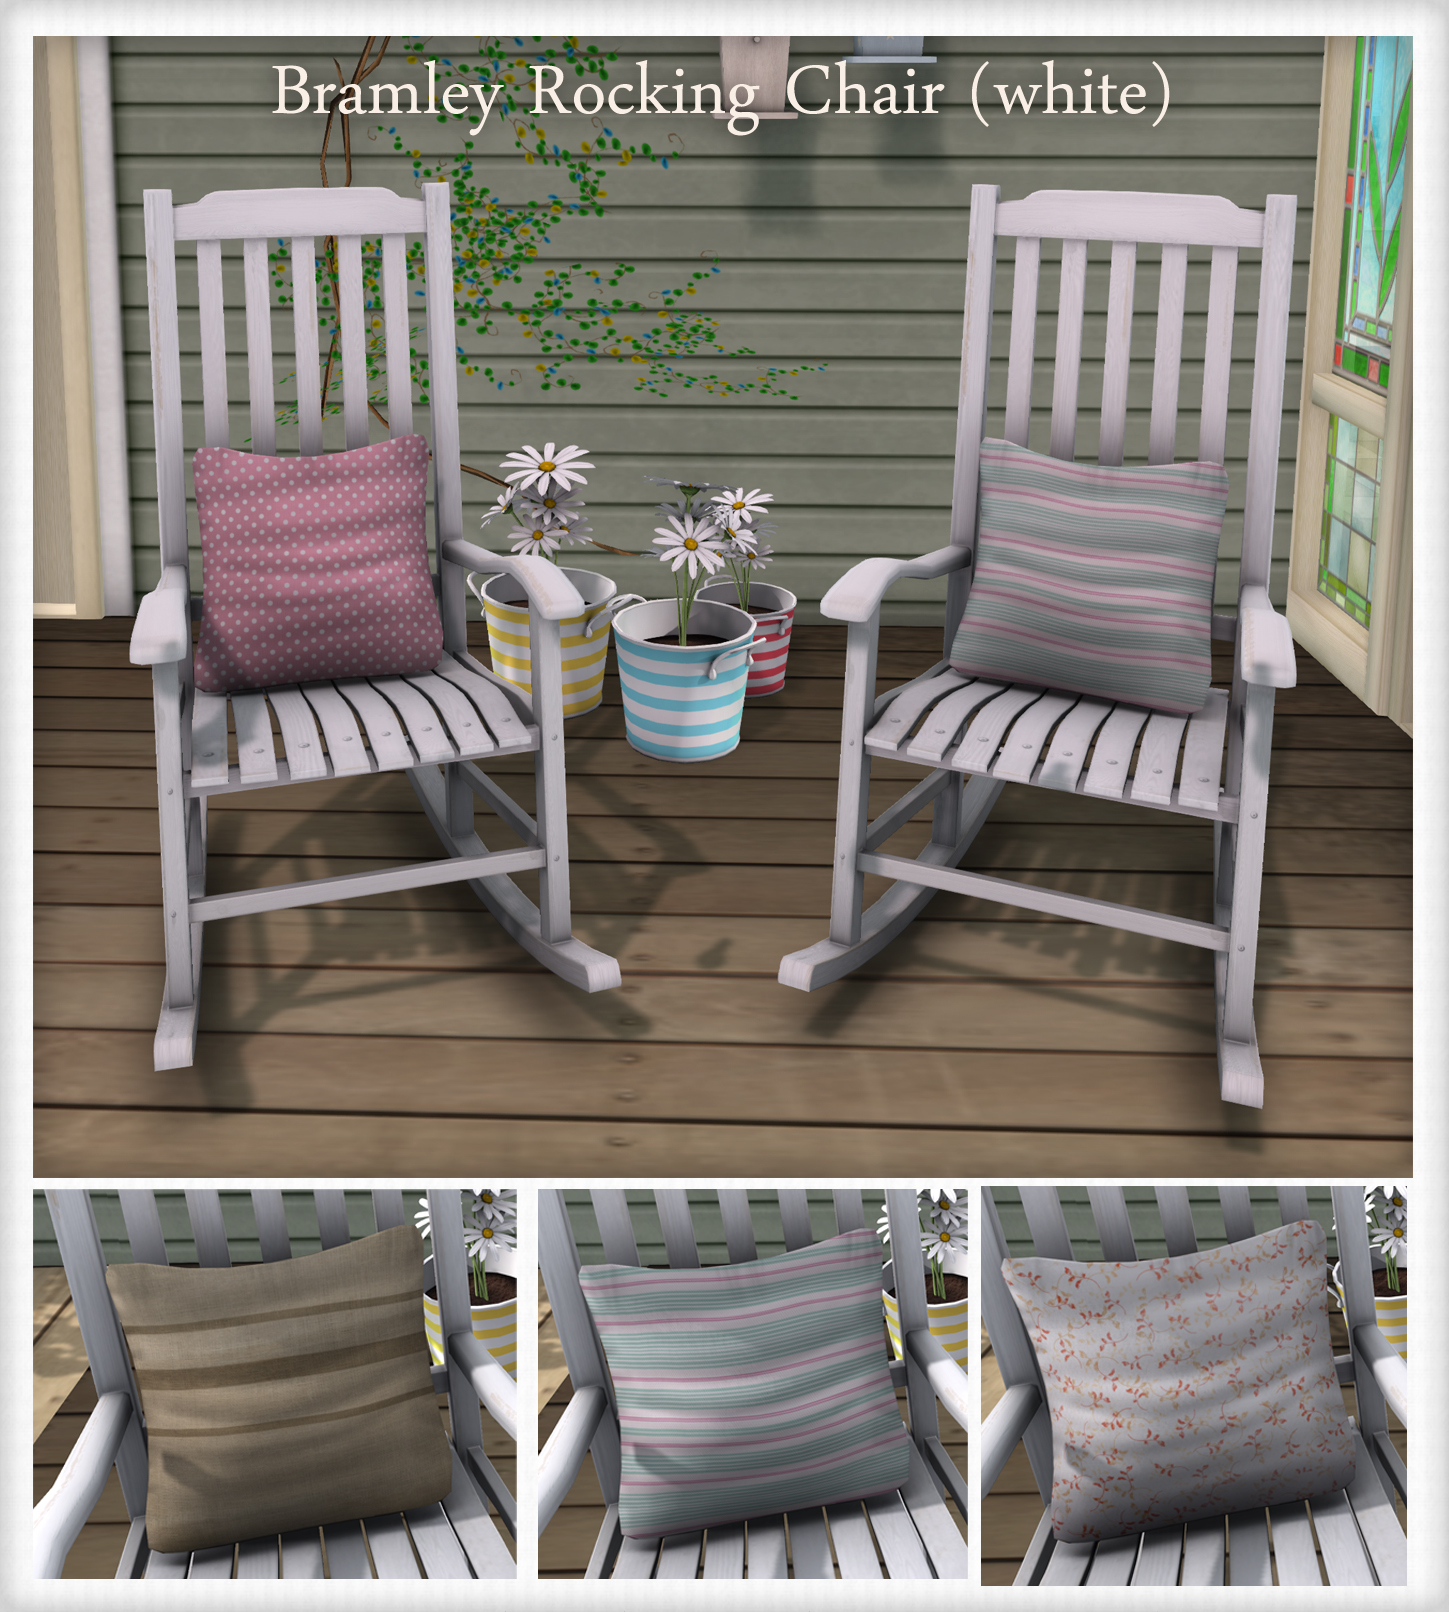 Superb img of what next} Bramley Rocking Chairs White marketplace with #45633A color and 1449x1612 pixels